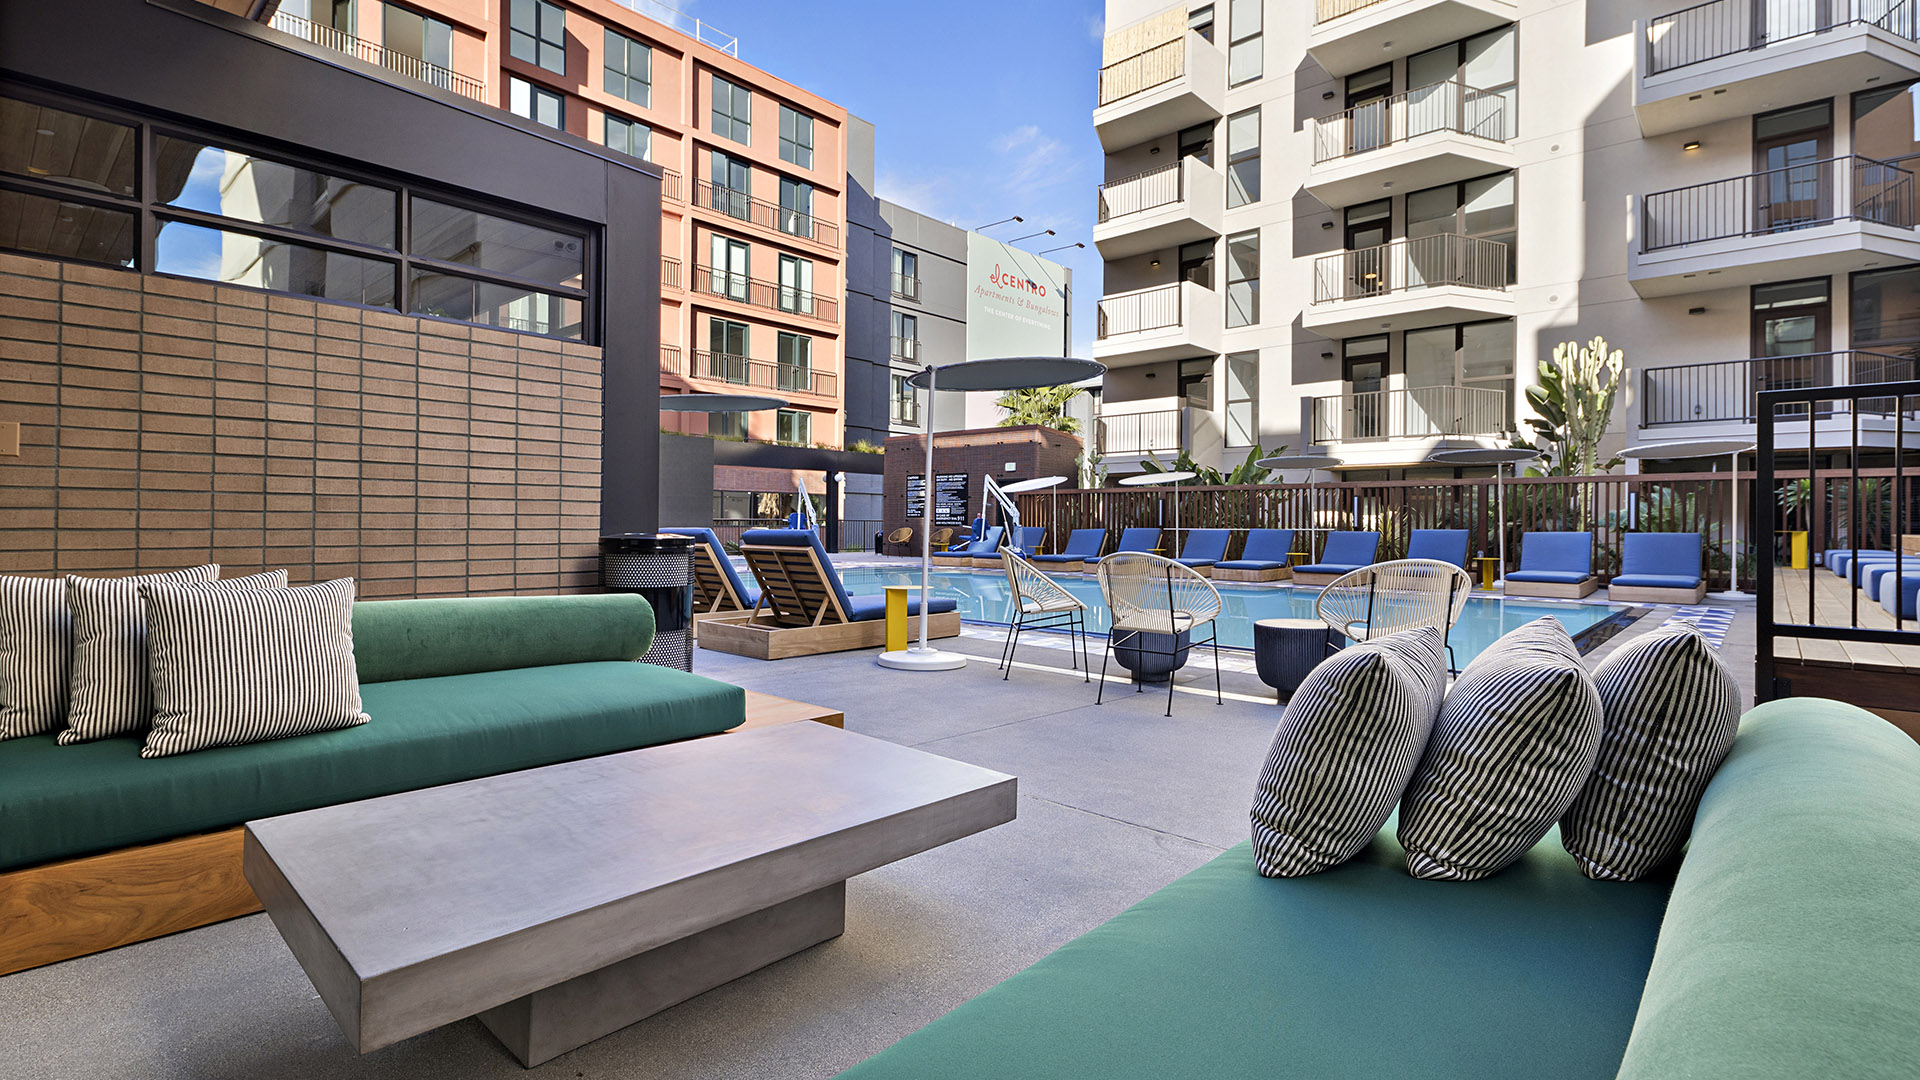 Outdoor lounge with comfortable plush couches and stone table with pool area and apartments behind.